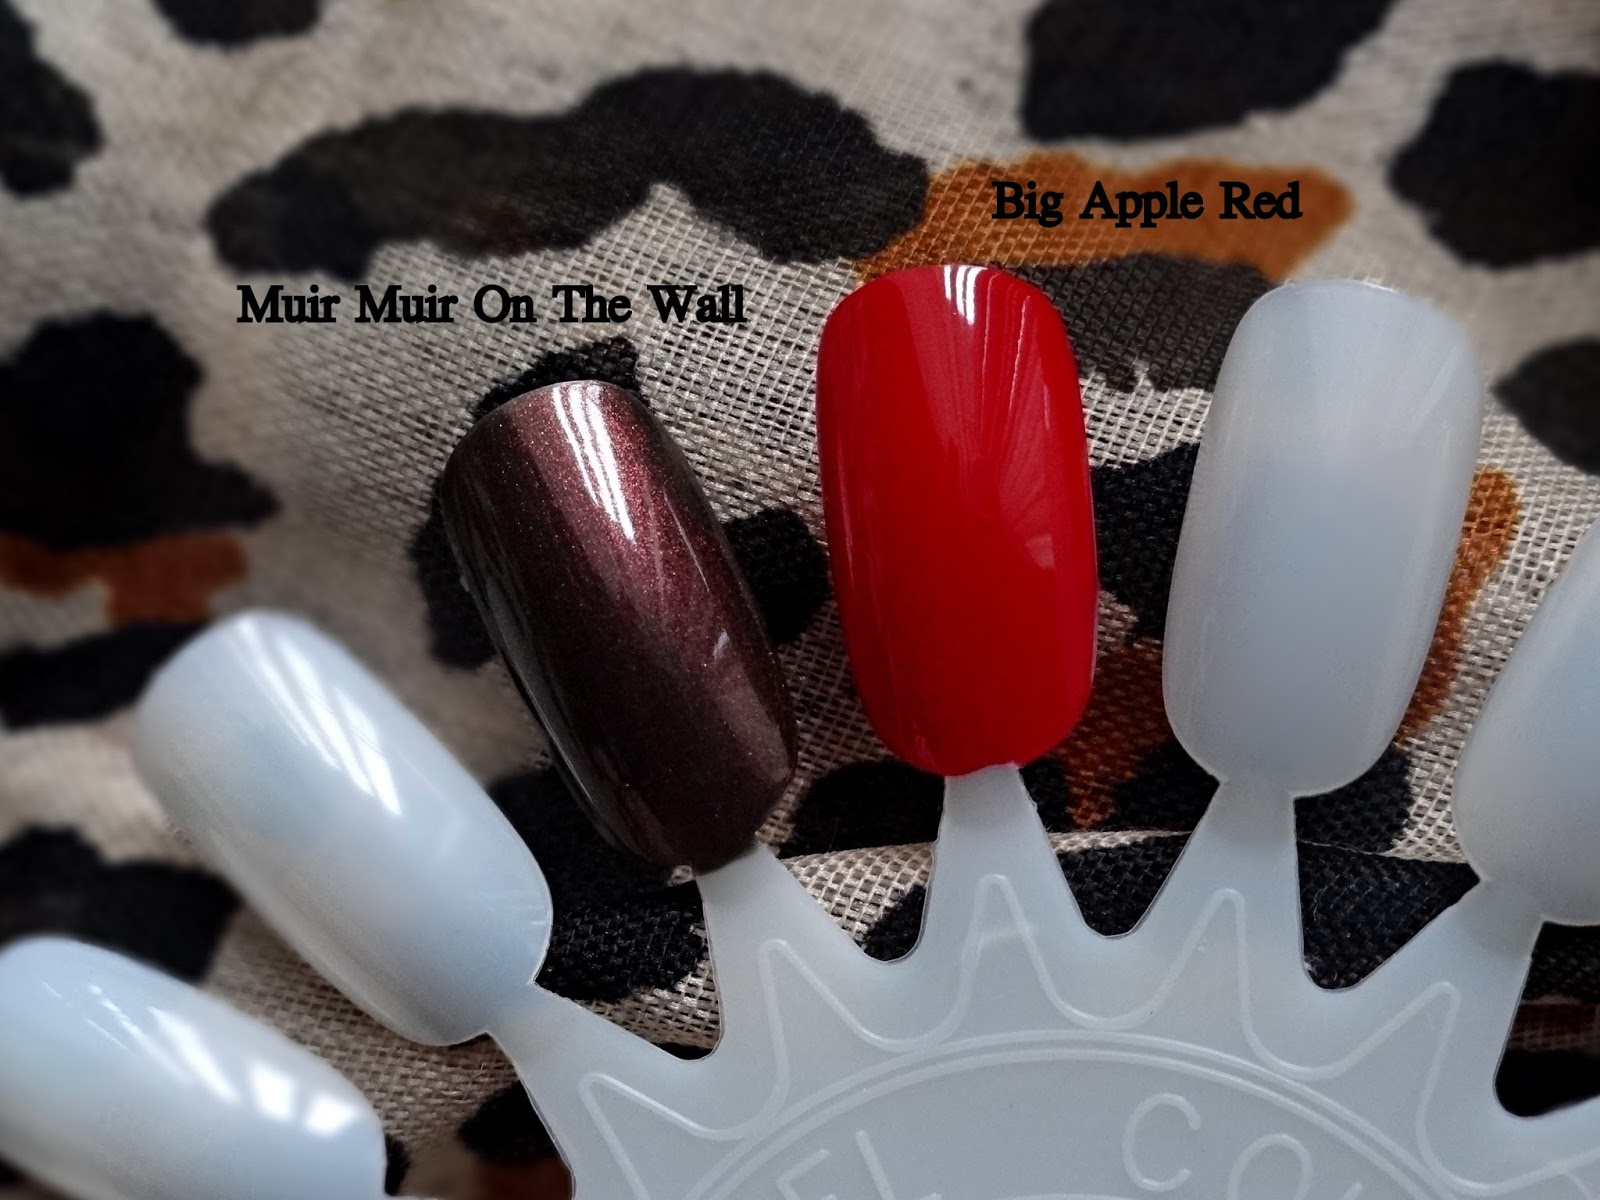 OPI Wrapped Wild For The Holidays - Muir Muir On The Wall, Big Apple Red | OPI Holiday 2014 Limited Edition Swatches